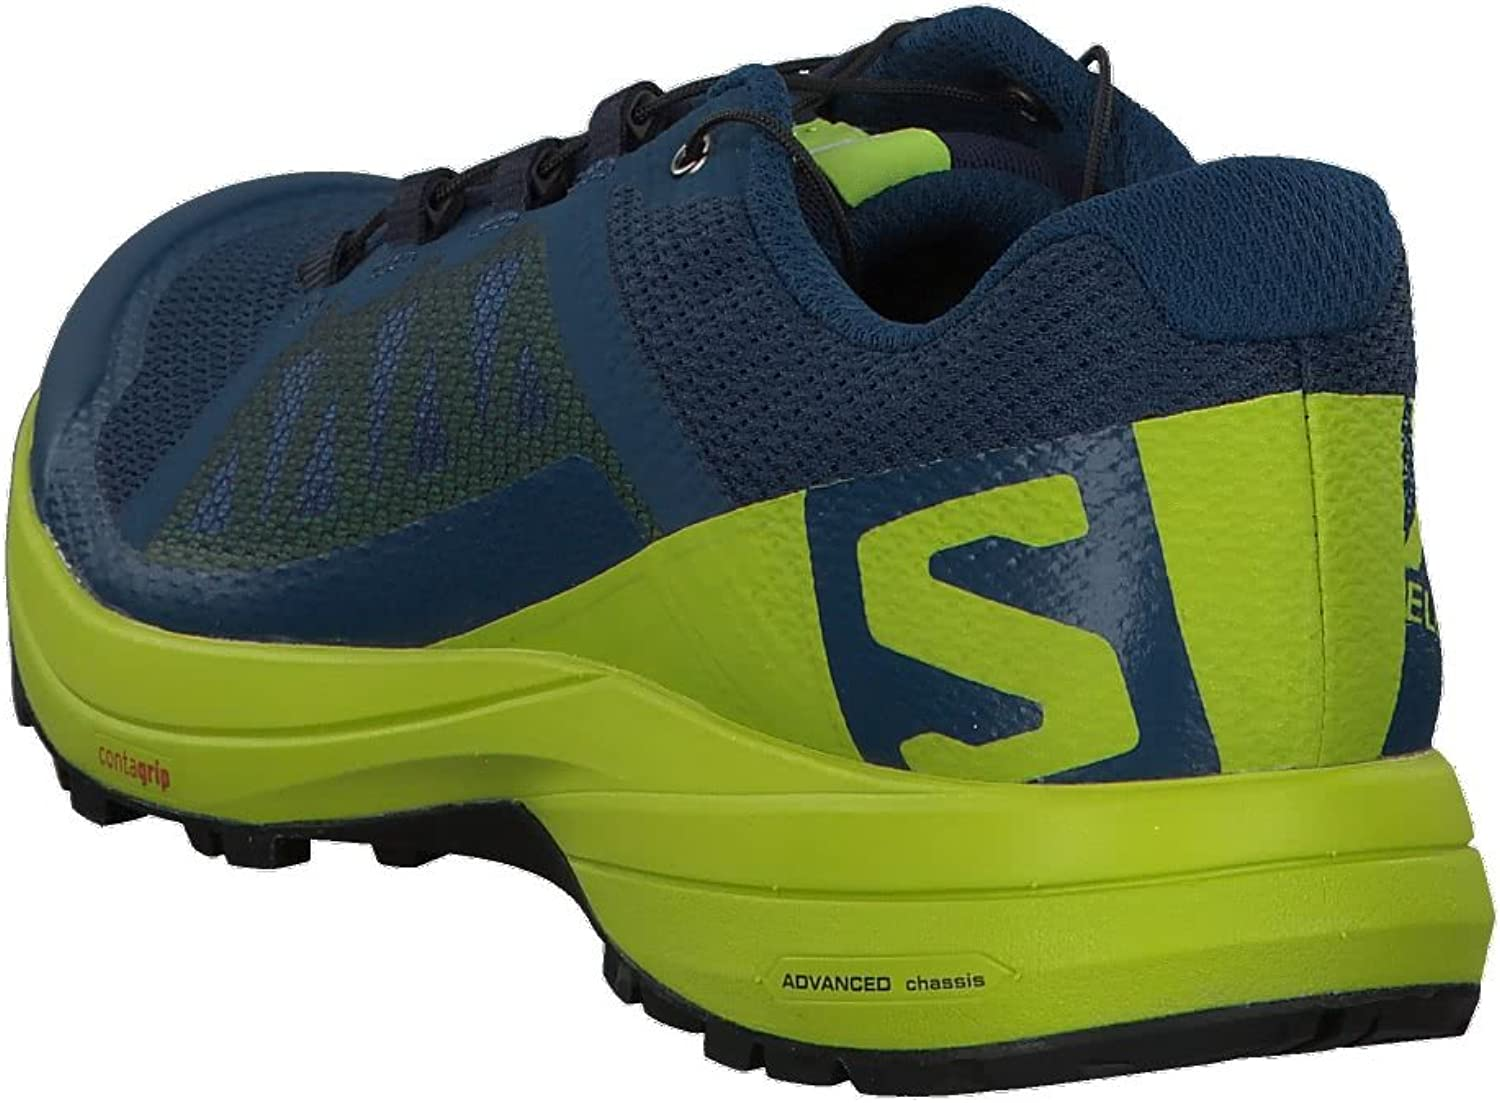 SALOMON XA Elevate, Zapatillas de Trail Running para Hombre: Amazon.es: Zapatos y complementos